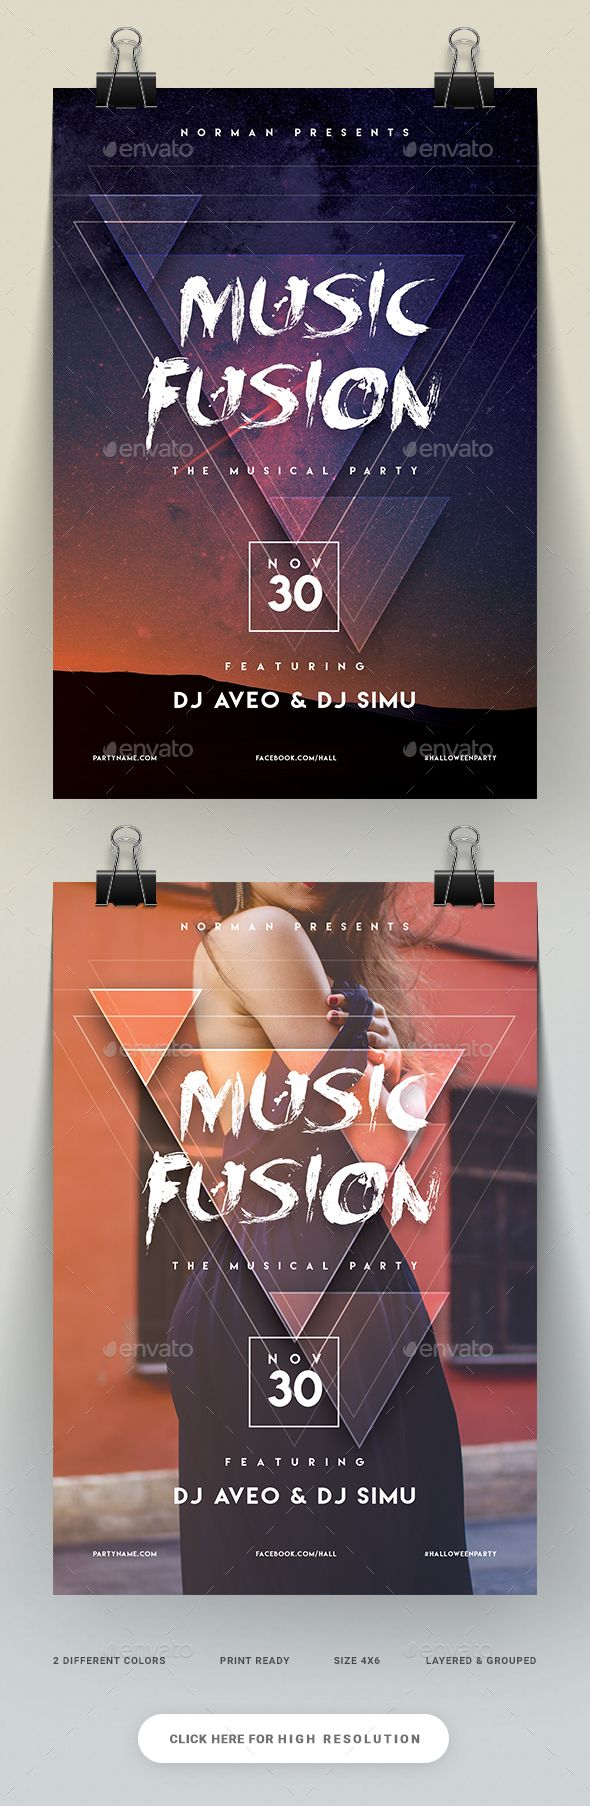 Music Fusion Party Flyer — PSD Template #hardcore #spirit ...